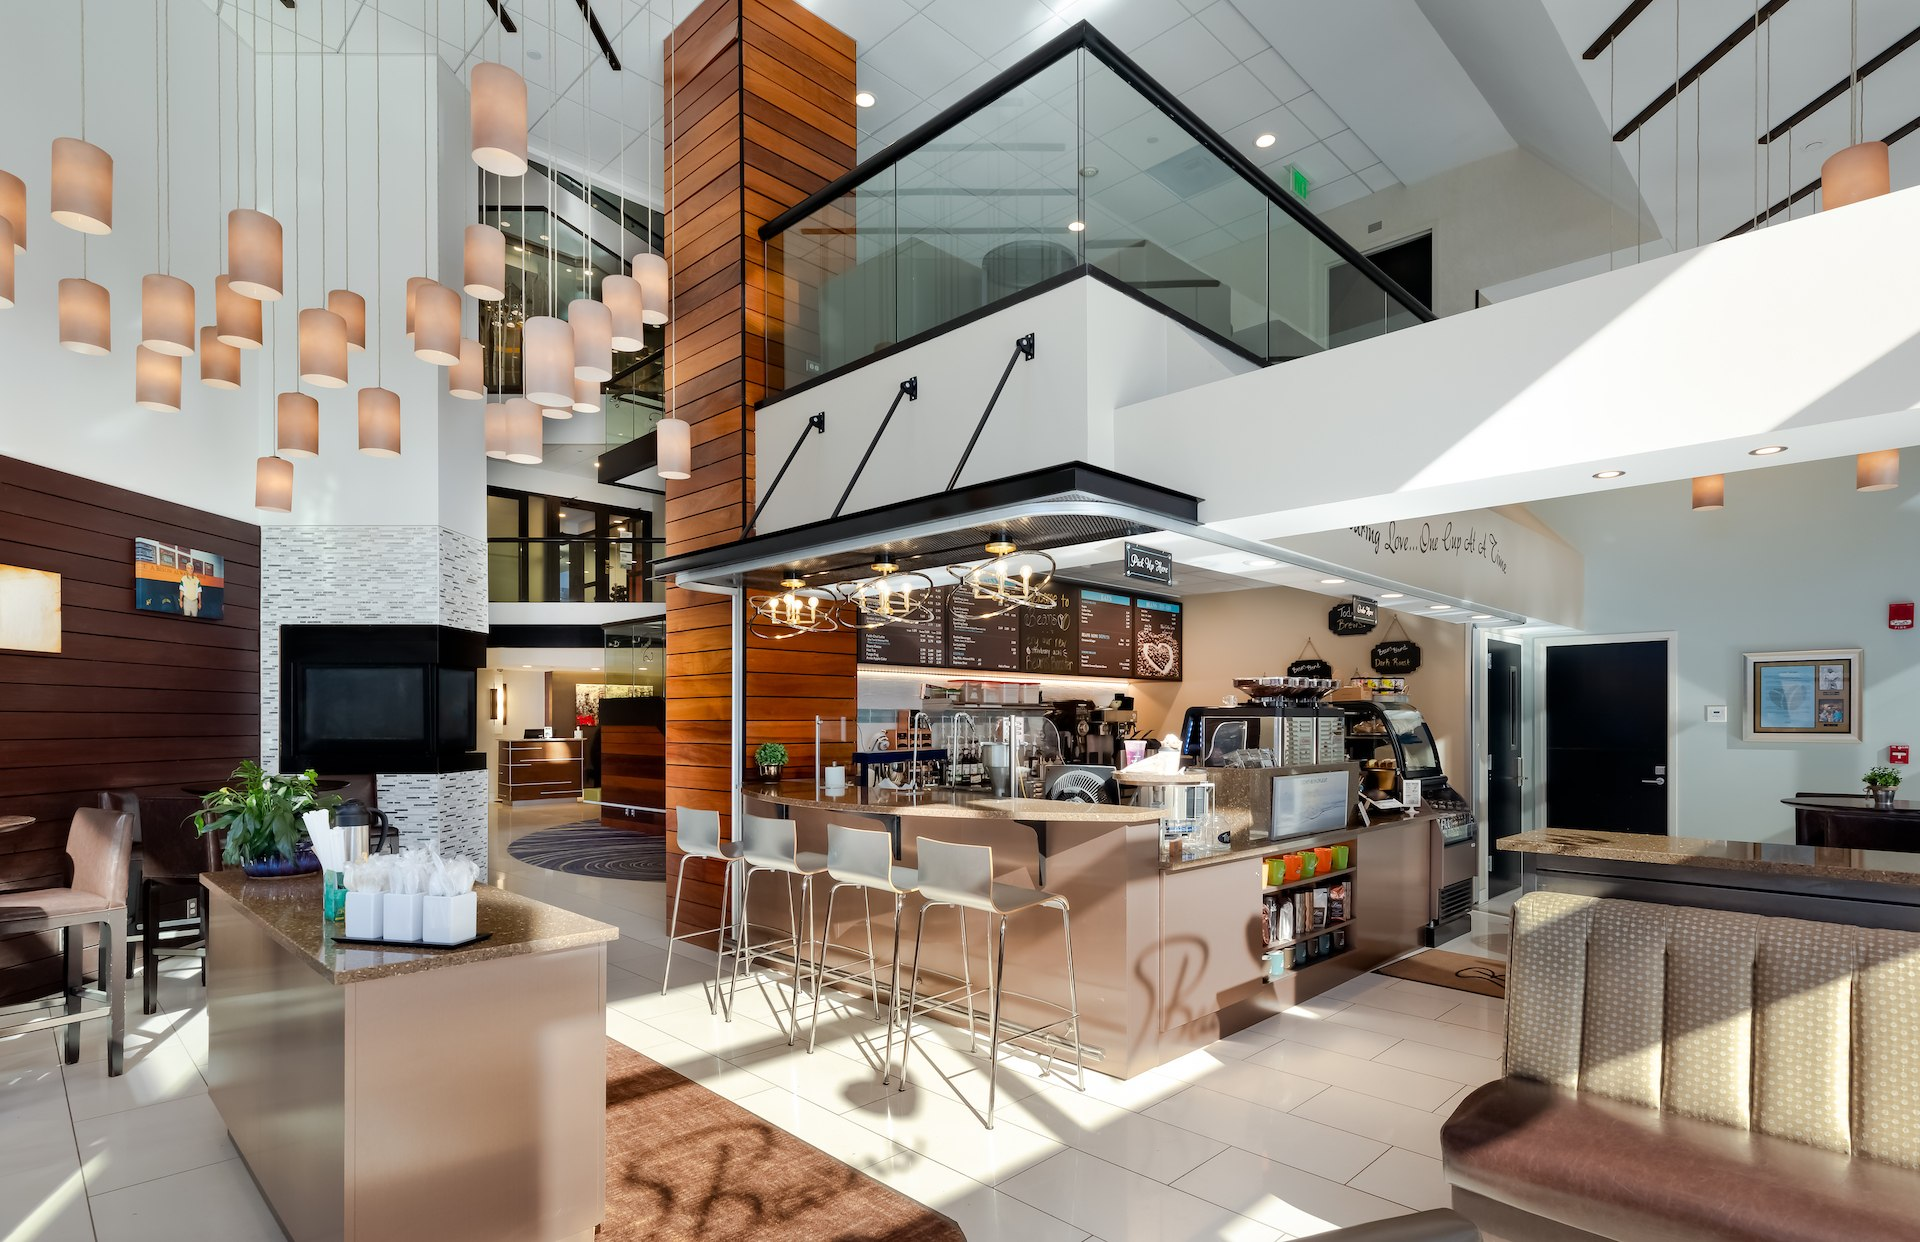 Beans Coffee Bar at Radisson Hotel Fargo-1.jpg